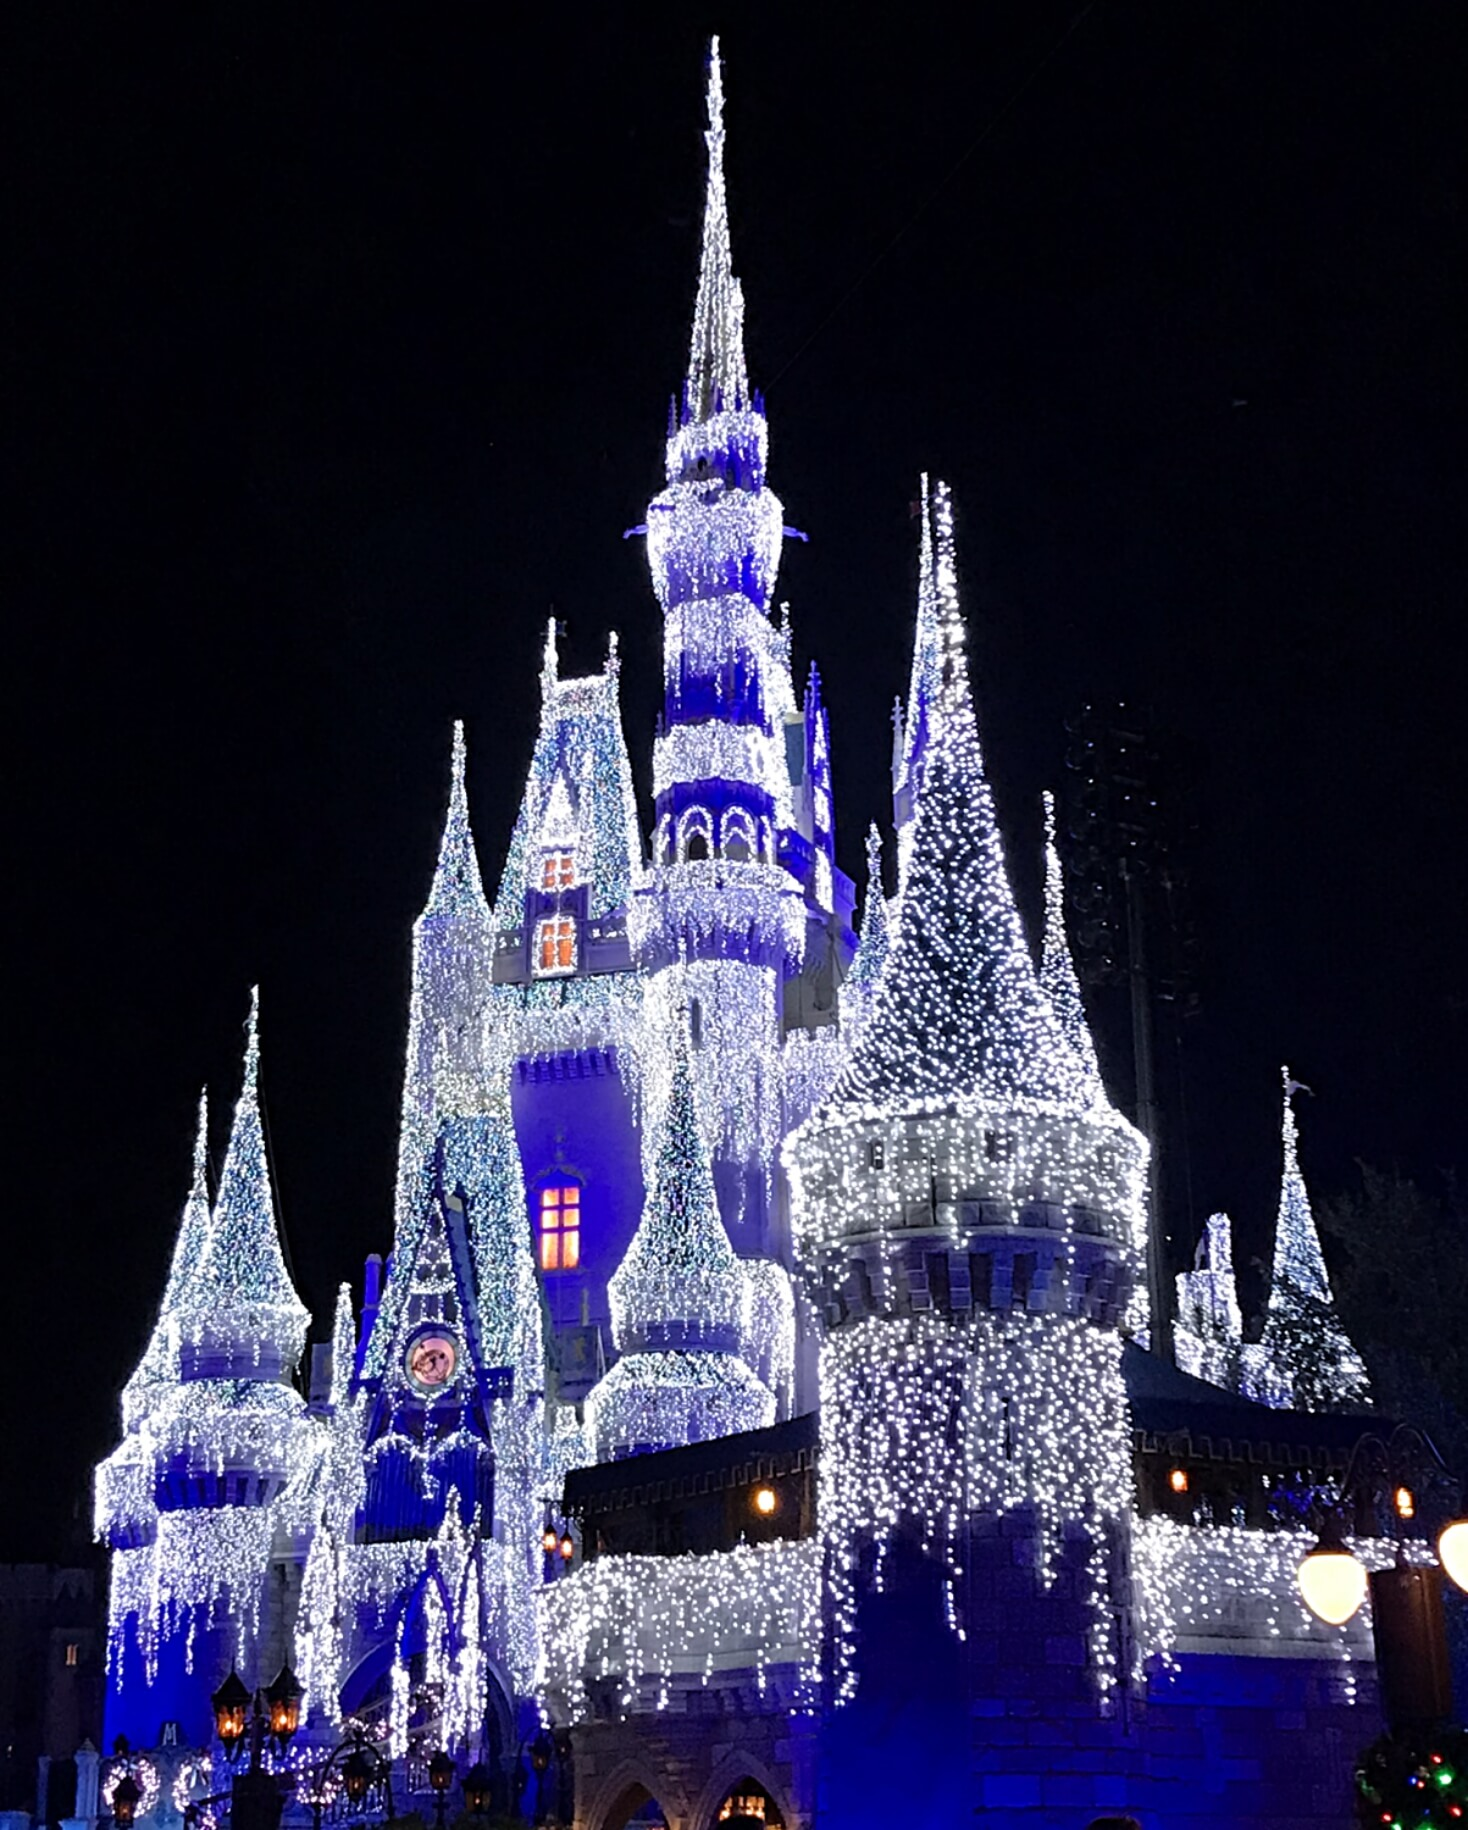 disney castle lit up at christmas time